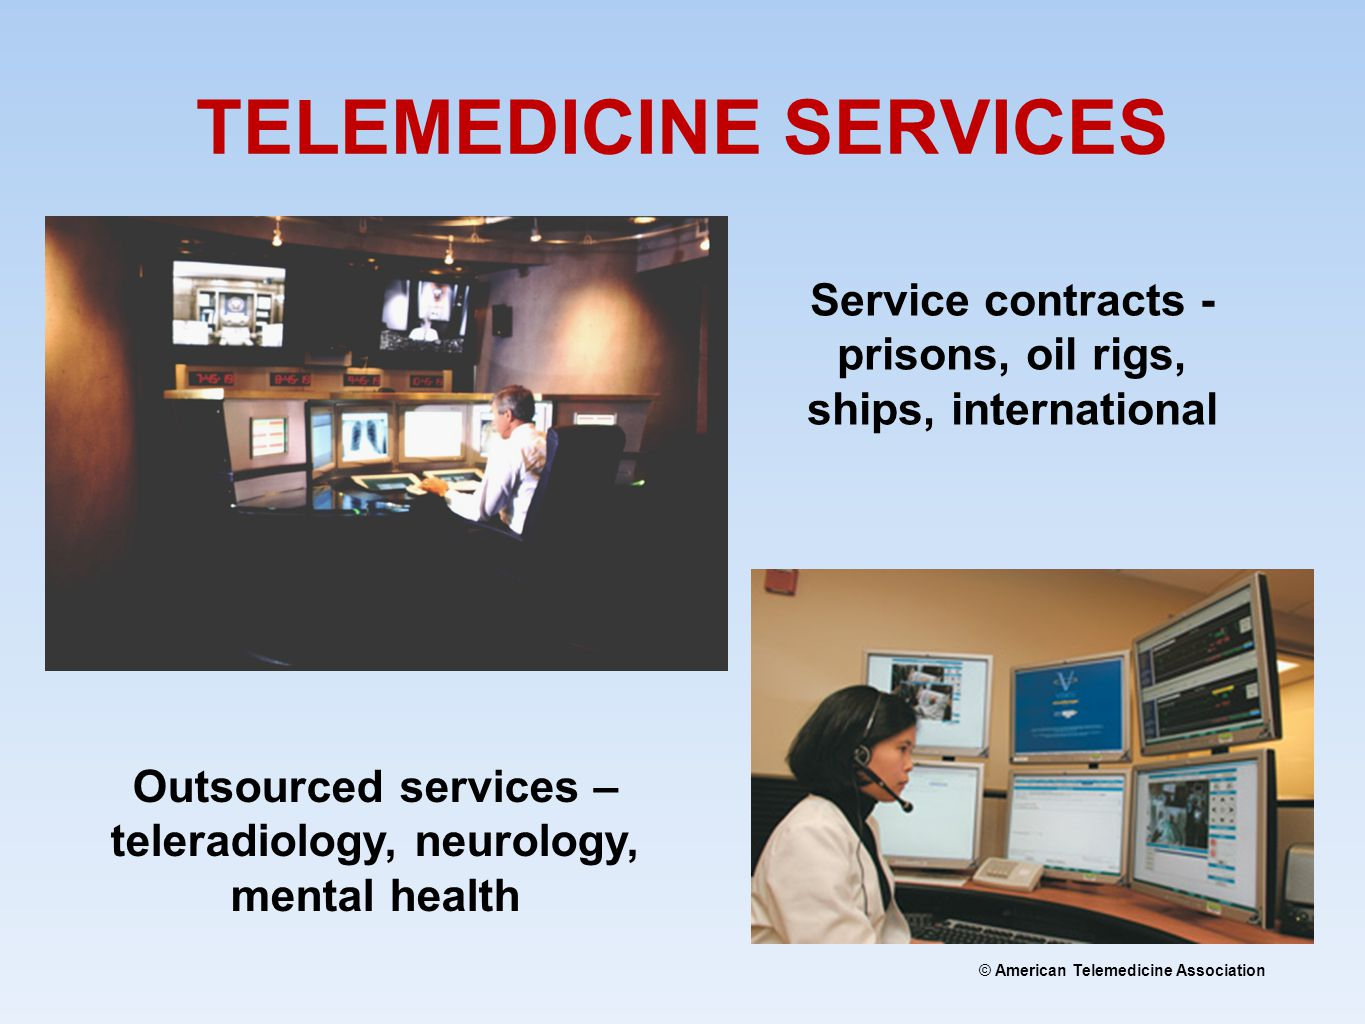 TELEMEDICINE SERVICES Outsourced services – teleradiology, neurology, mental health Service contracts - prisons, oil rigs, ships, international